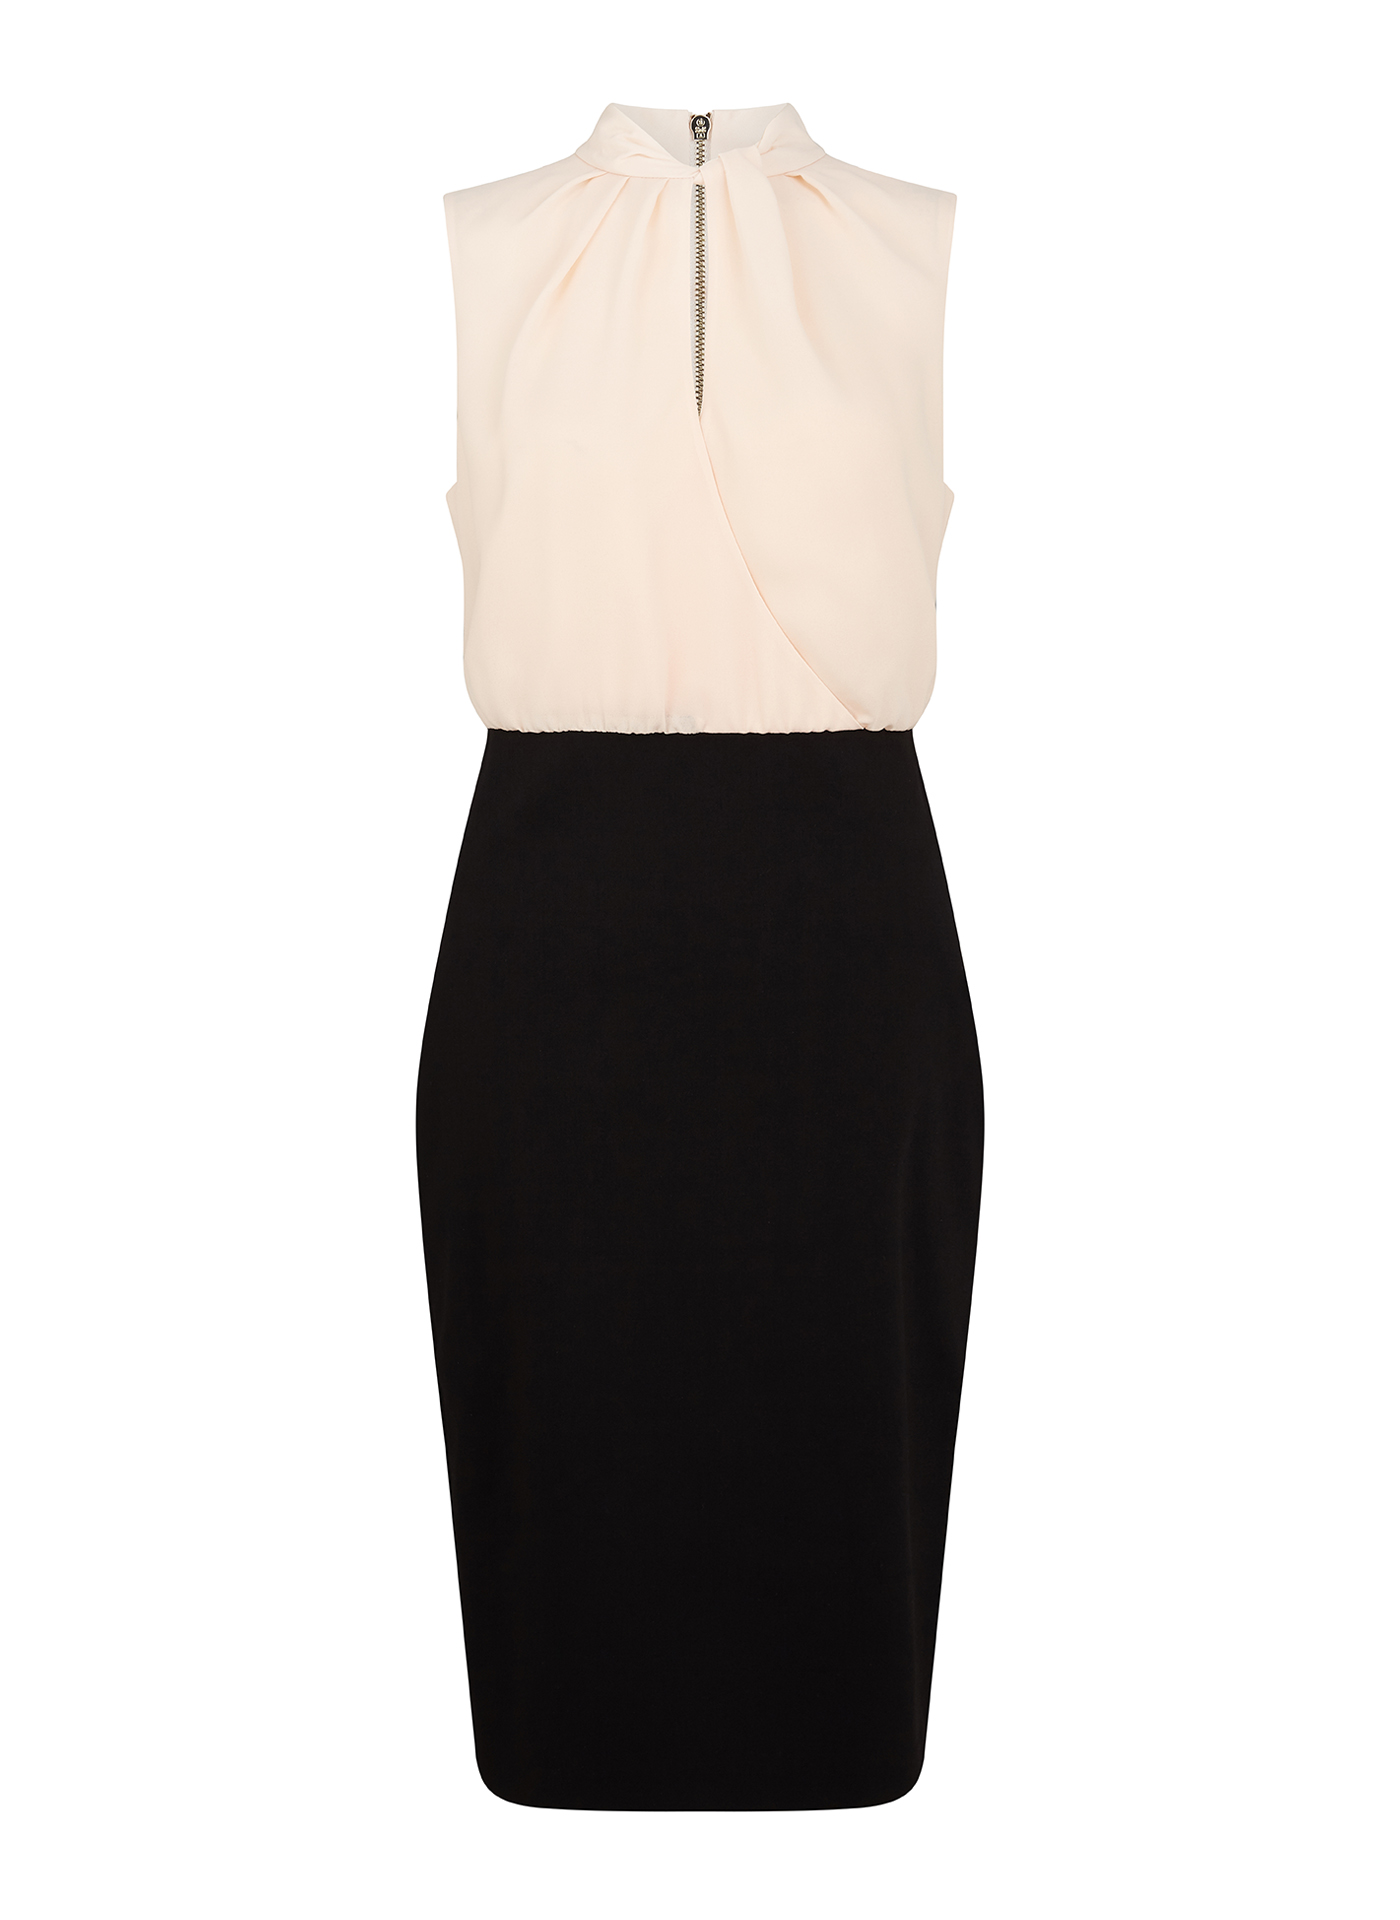 Pale sand Ted Baker top combined with black Ted Baker skirt